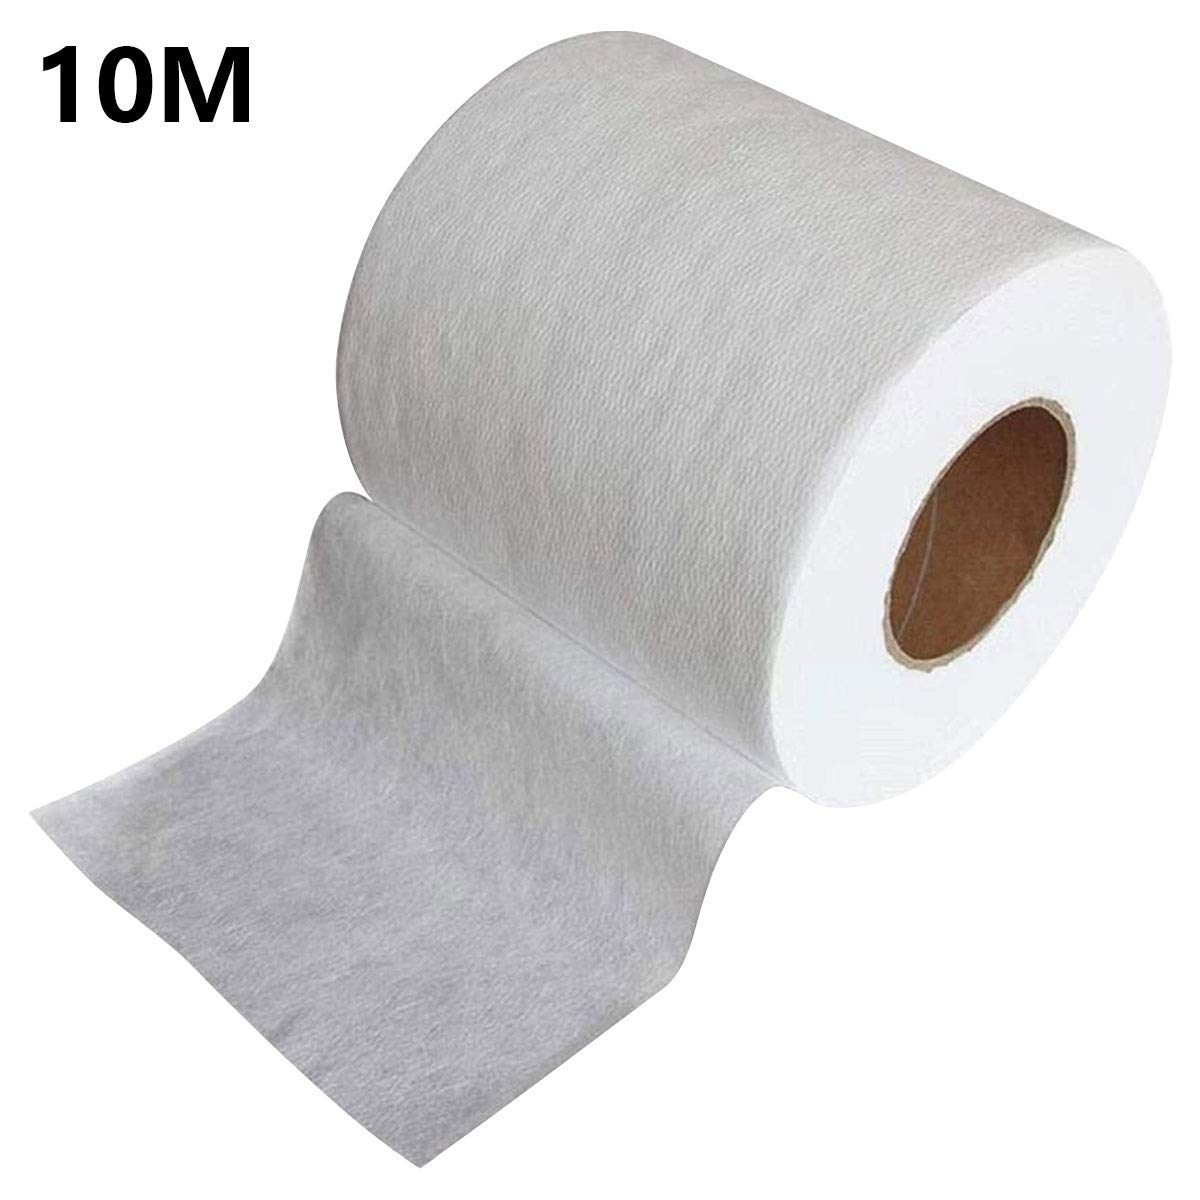 Non-Woven Fabric Melt-Blown Cloth, Disposable Middle Layer Filter Microfiber Fabric Polypropylene Sediment Filters for Filtering, Filtering Efficiency Greater Than 95% (10M)